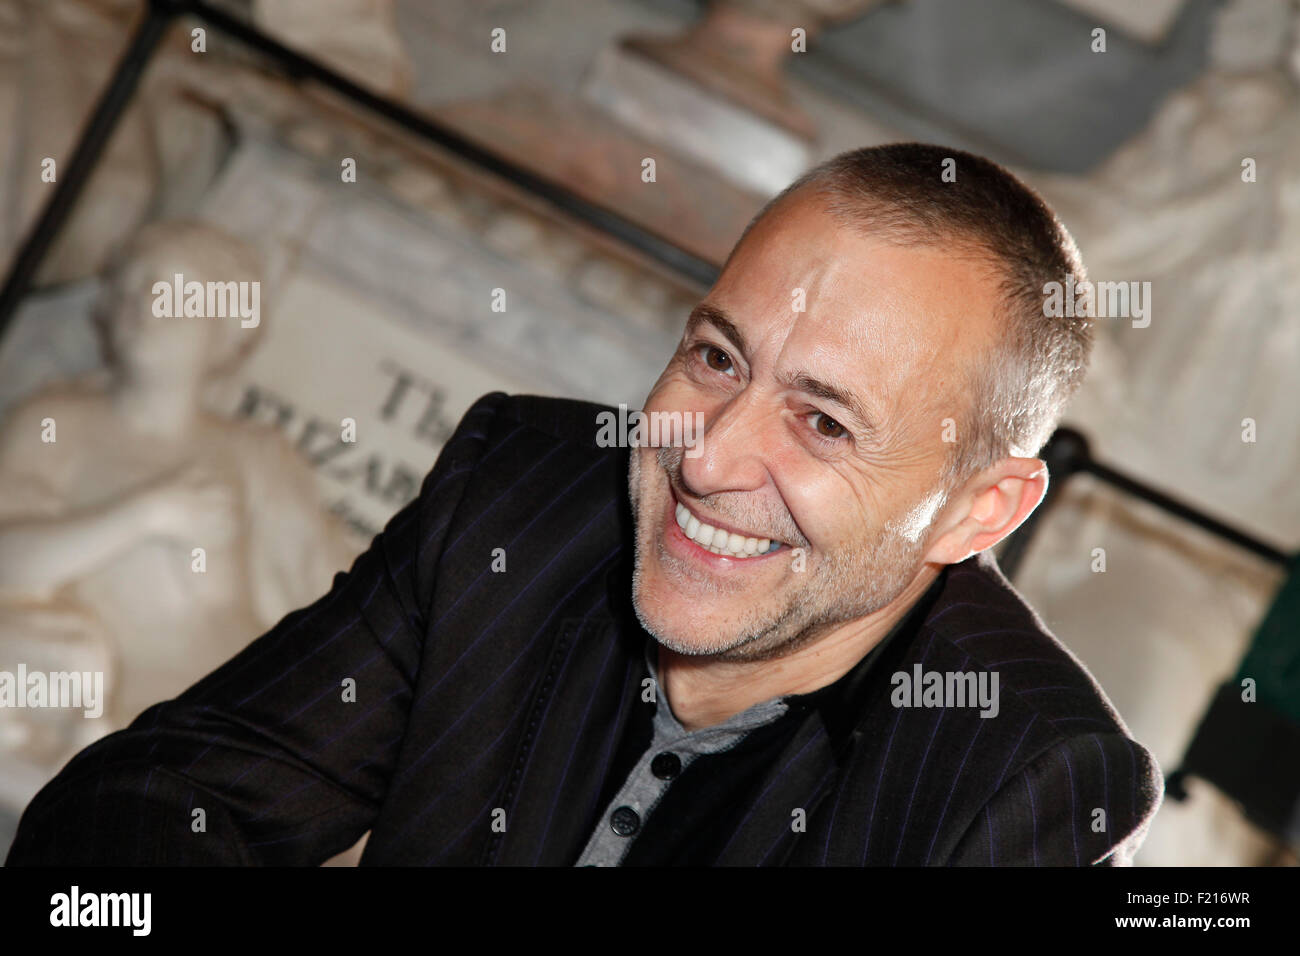 People, Famous, Celebrity chef Michel Roux Junior. - Stock Image